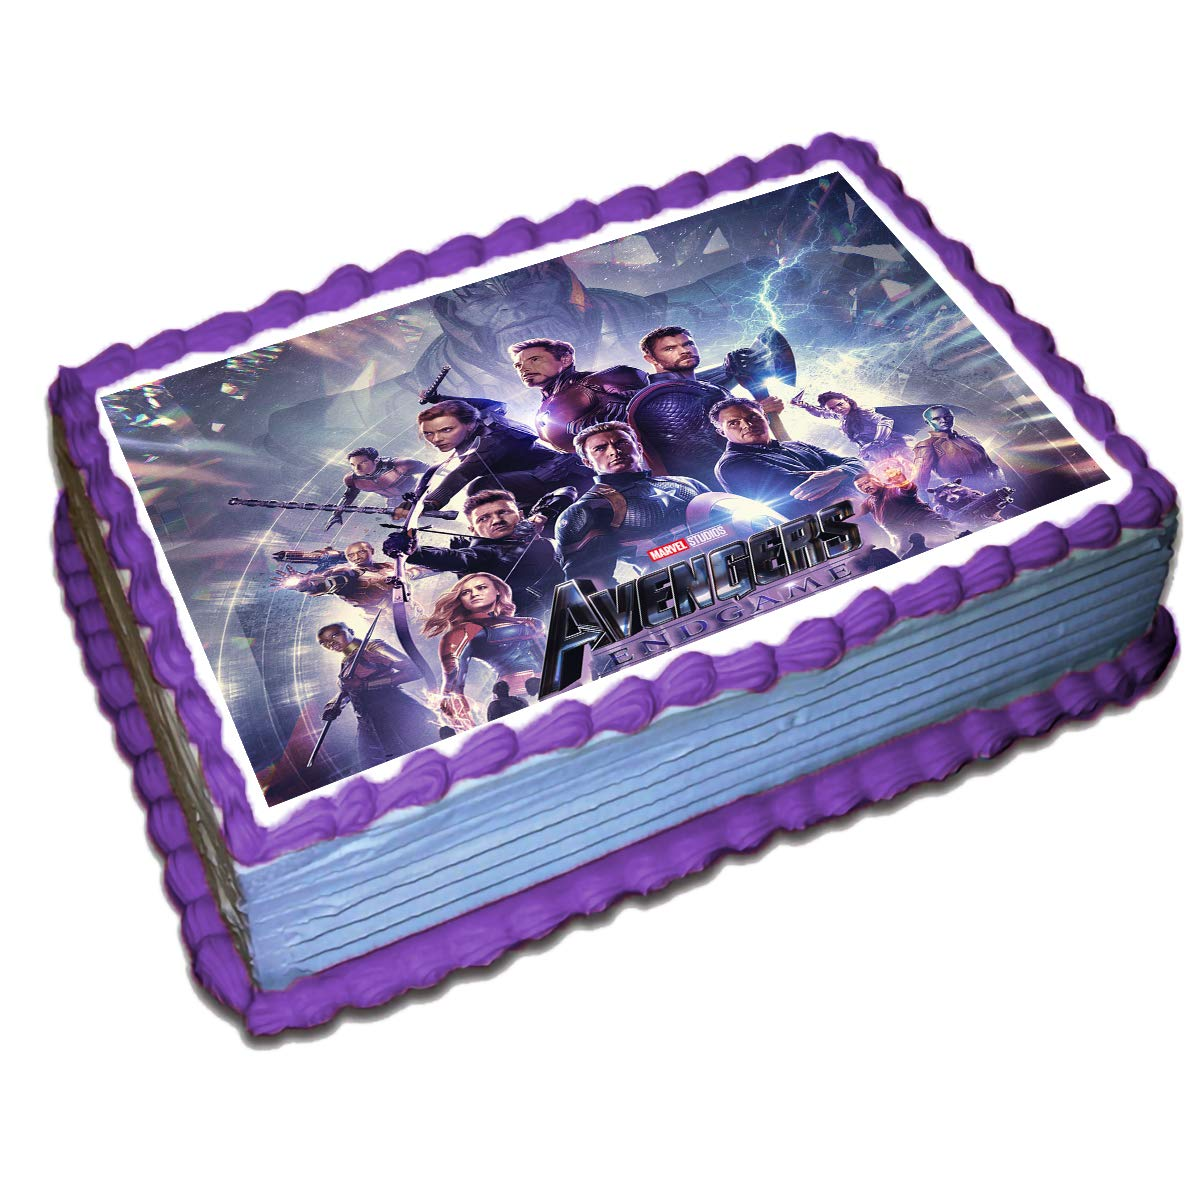 Pleasant Avengers End Game Cake Topper Icing Sugar Paper 8 5 X 11 5 Inches Funny Birthday Cards Online Elaedamsfinfo